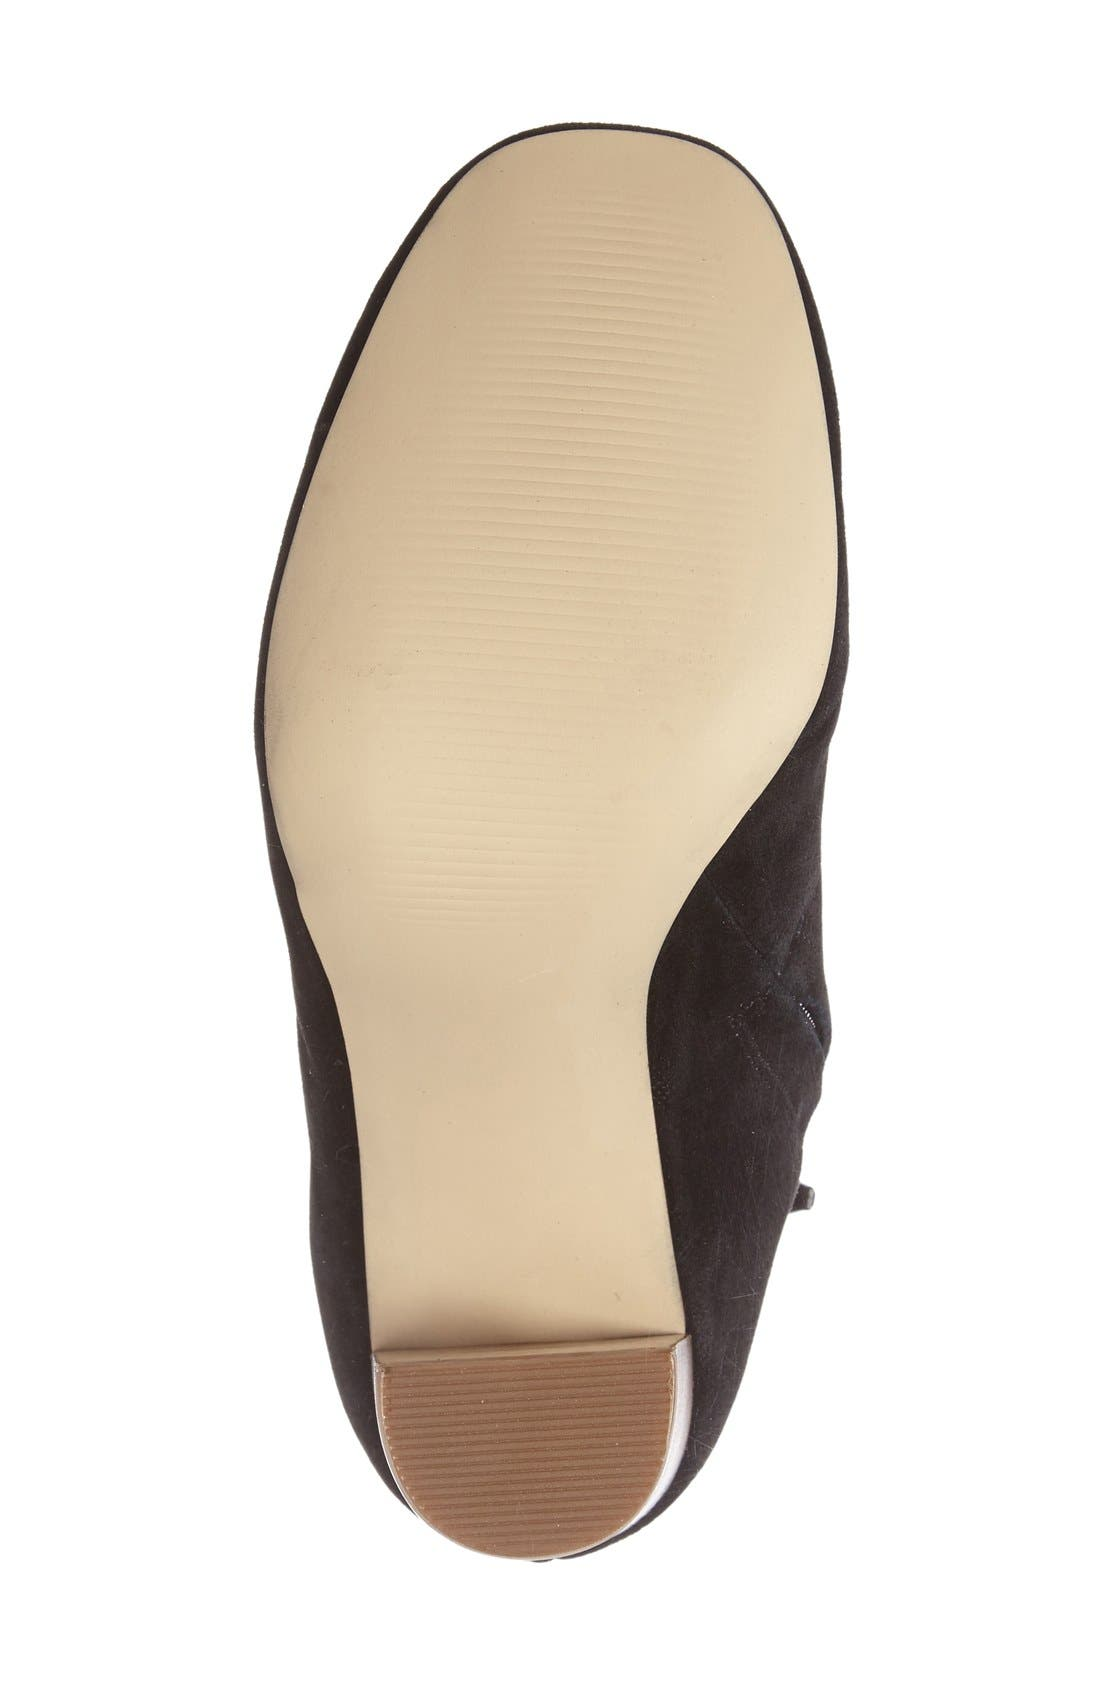 Veronica Bootie,                             Alternate thumbnail 4, color,                             003